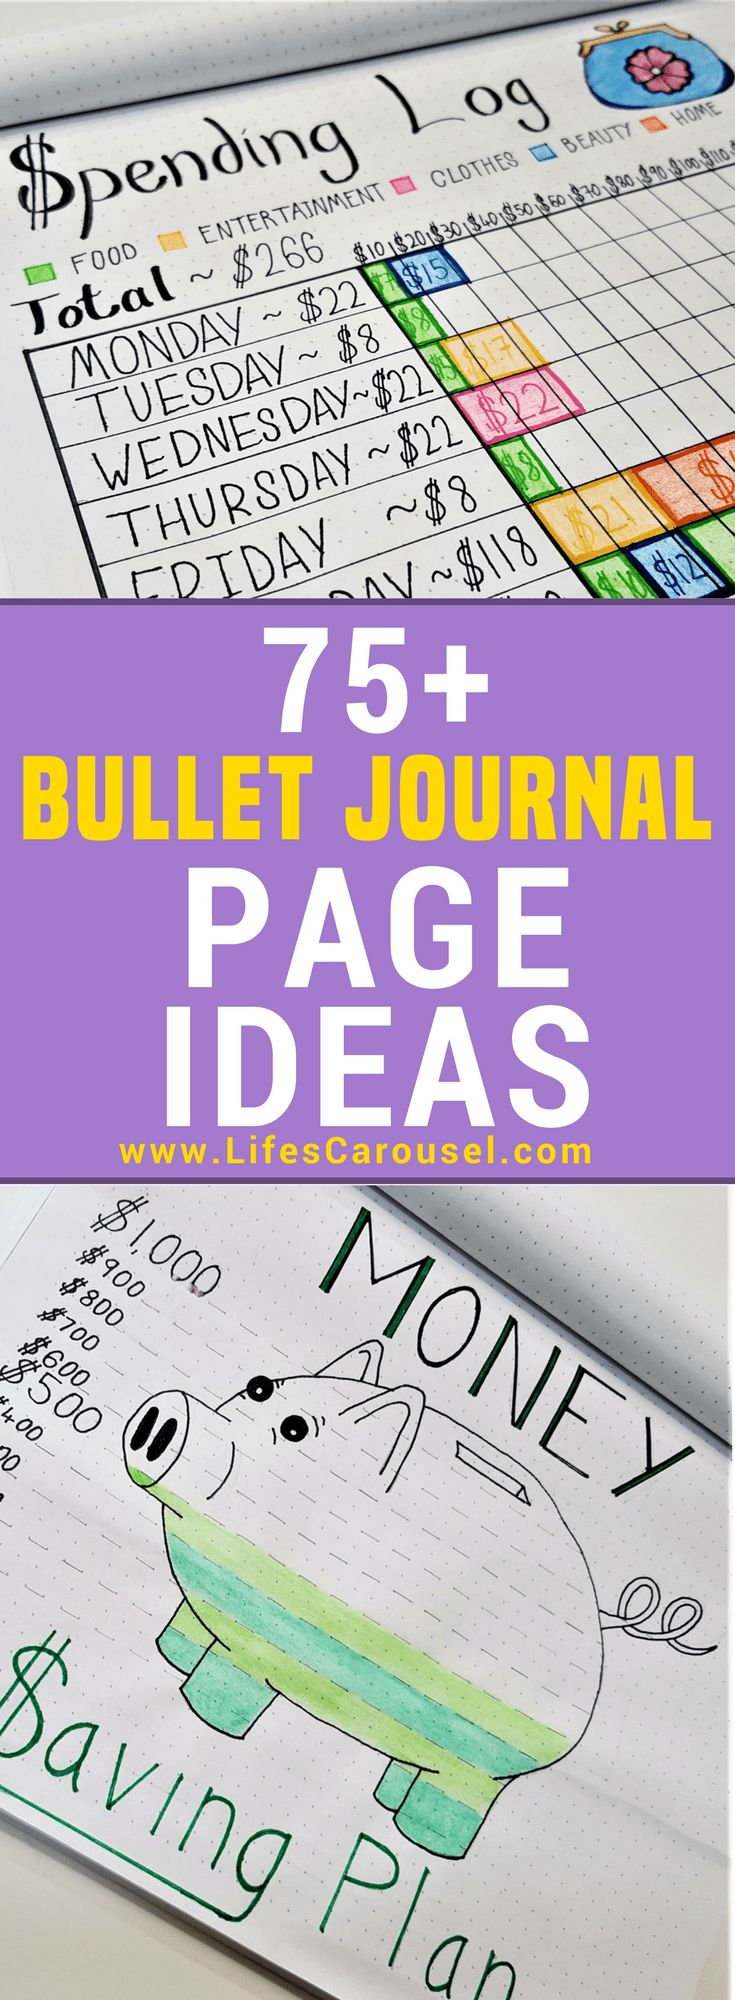 Bullet Journal Page Ideas – The Ultimate List of 75+ Bujo Page Ideas